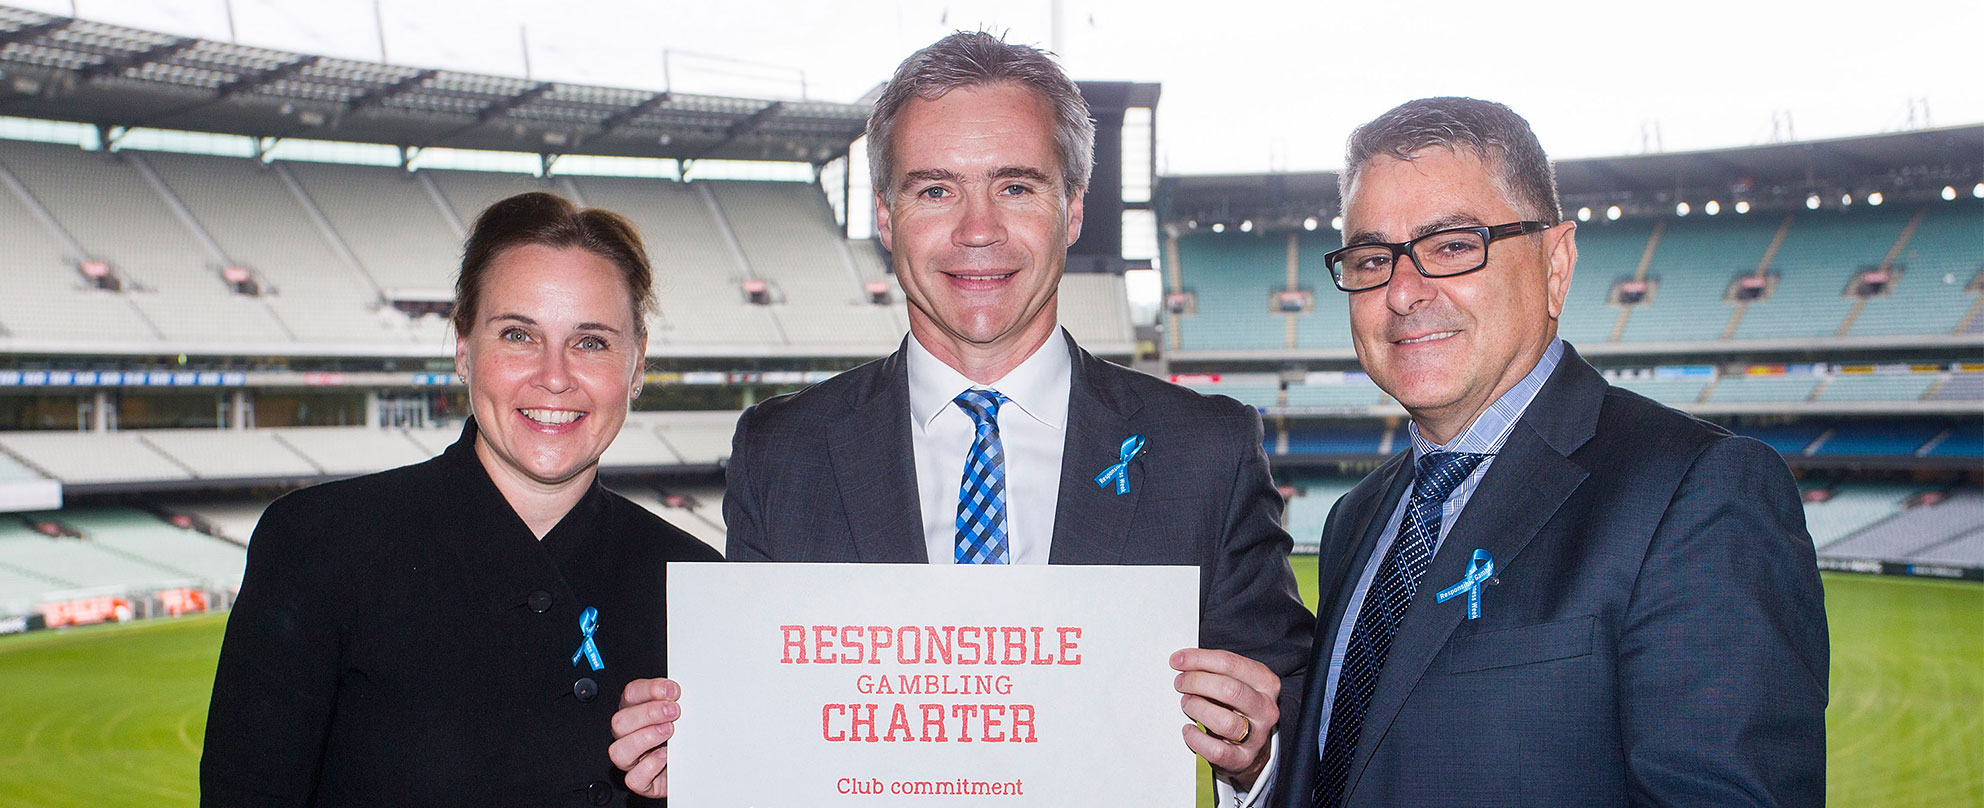 L to R: Minister for Consumer Affairs, Gaming and Liquor Regulation Jane Garrett, North Melbourne Football Club chief executive Carl Dilena, Victorian Responsible Gambling Foundation chief executive Serge Sardo, photo: Paul Jeffers